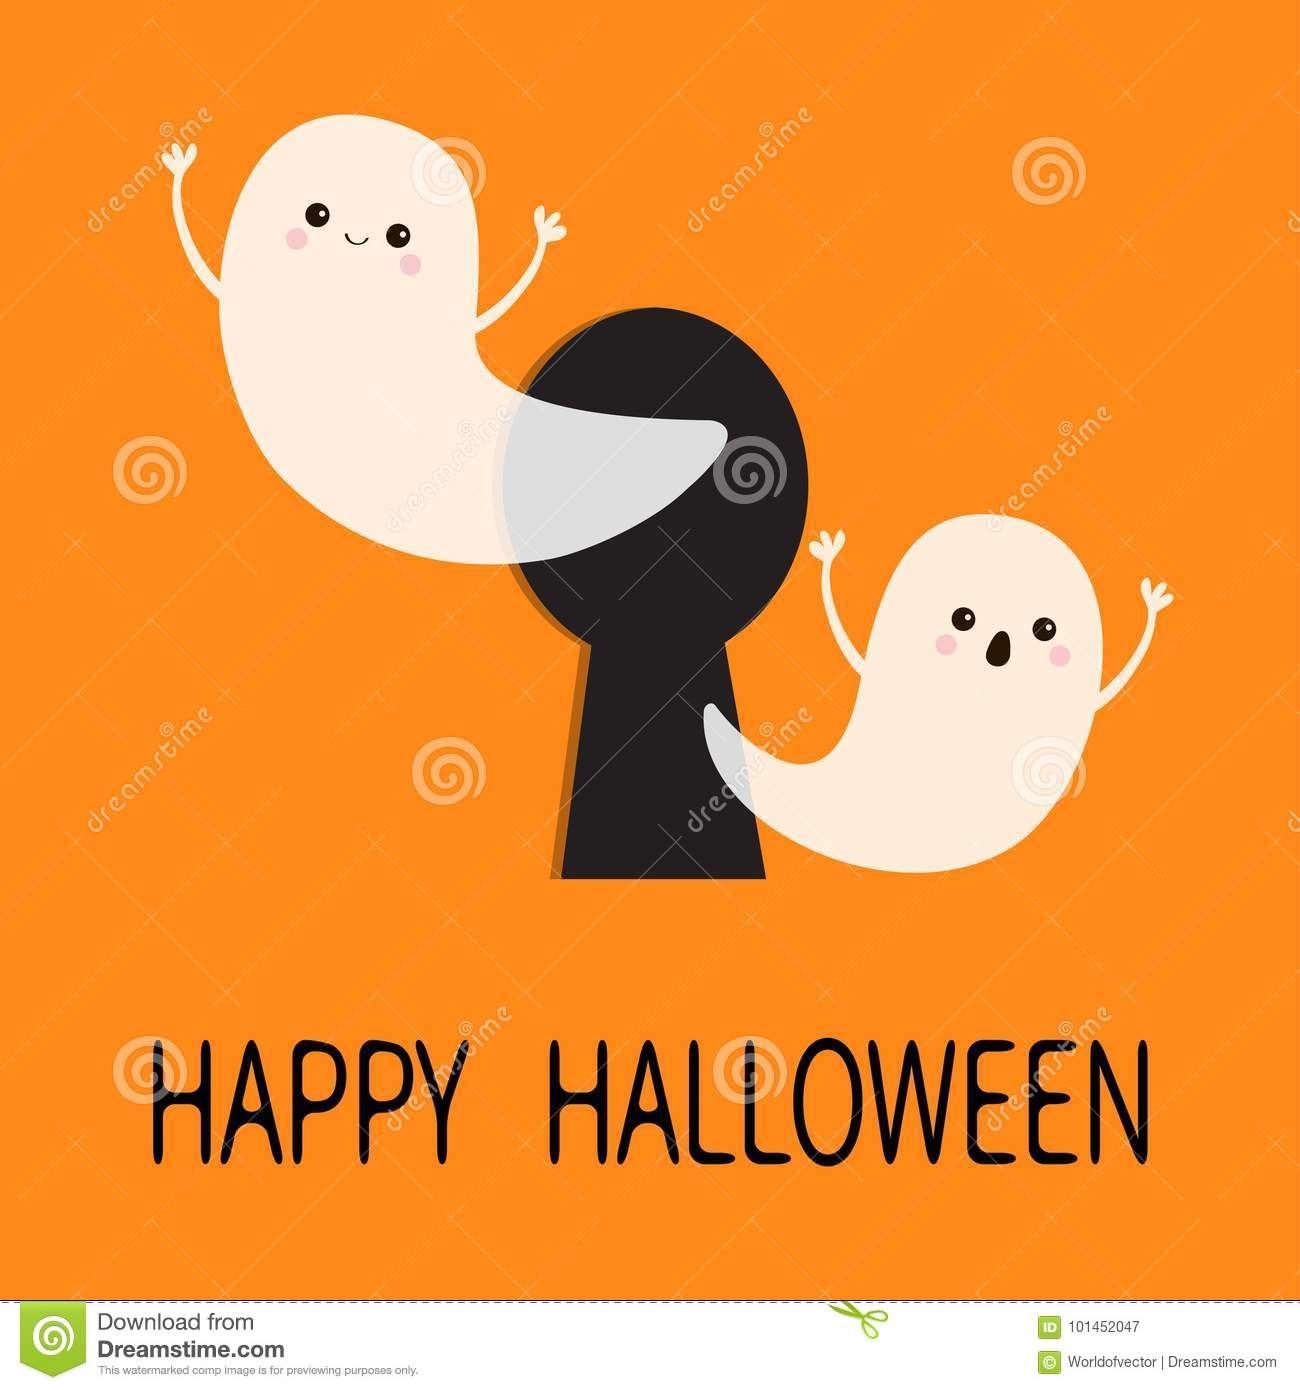 happy halloween two scary white ghosts key hole cute cartoon spooky character face frightening hands orange background greeting card flat design